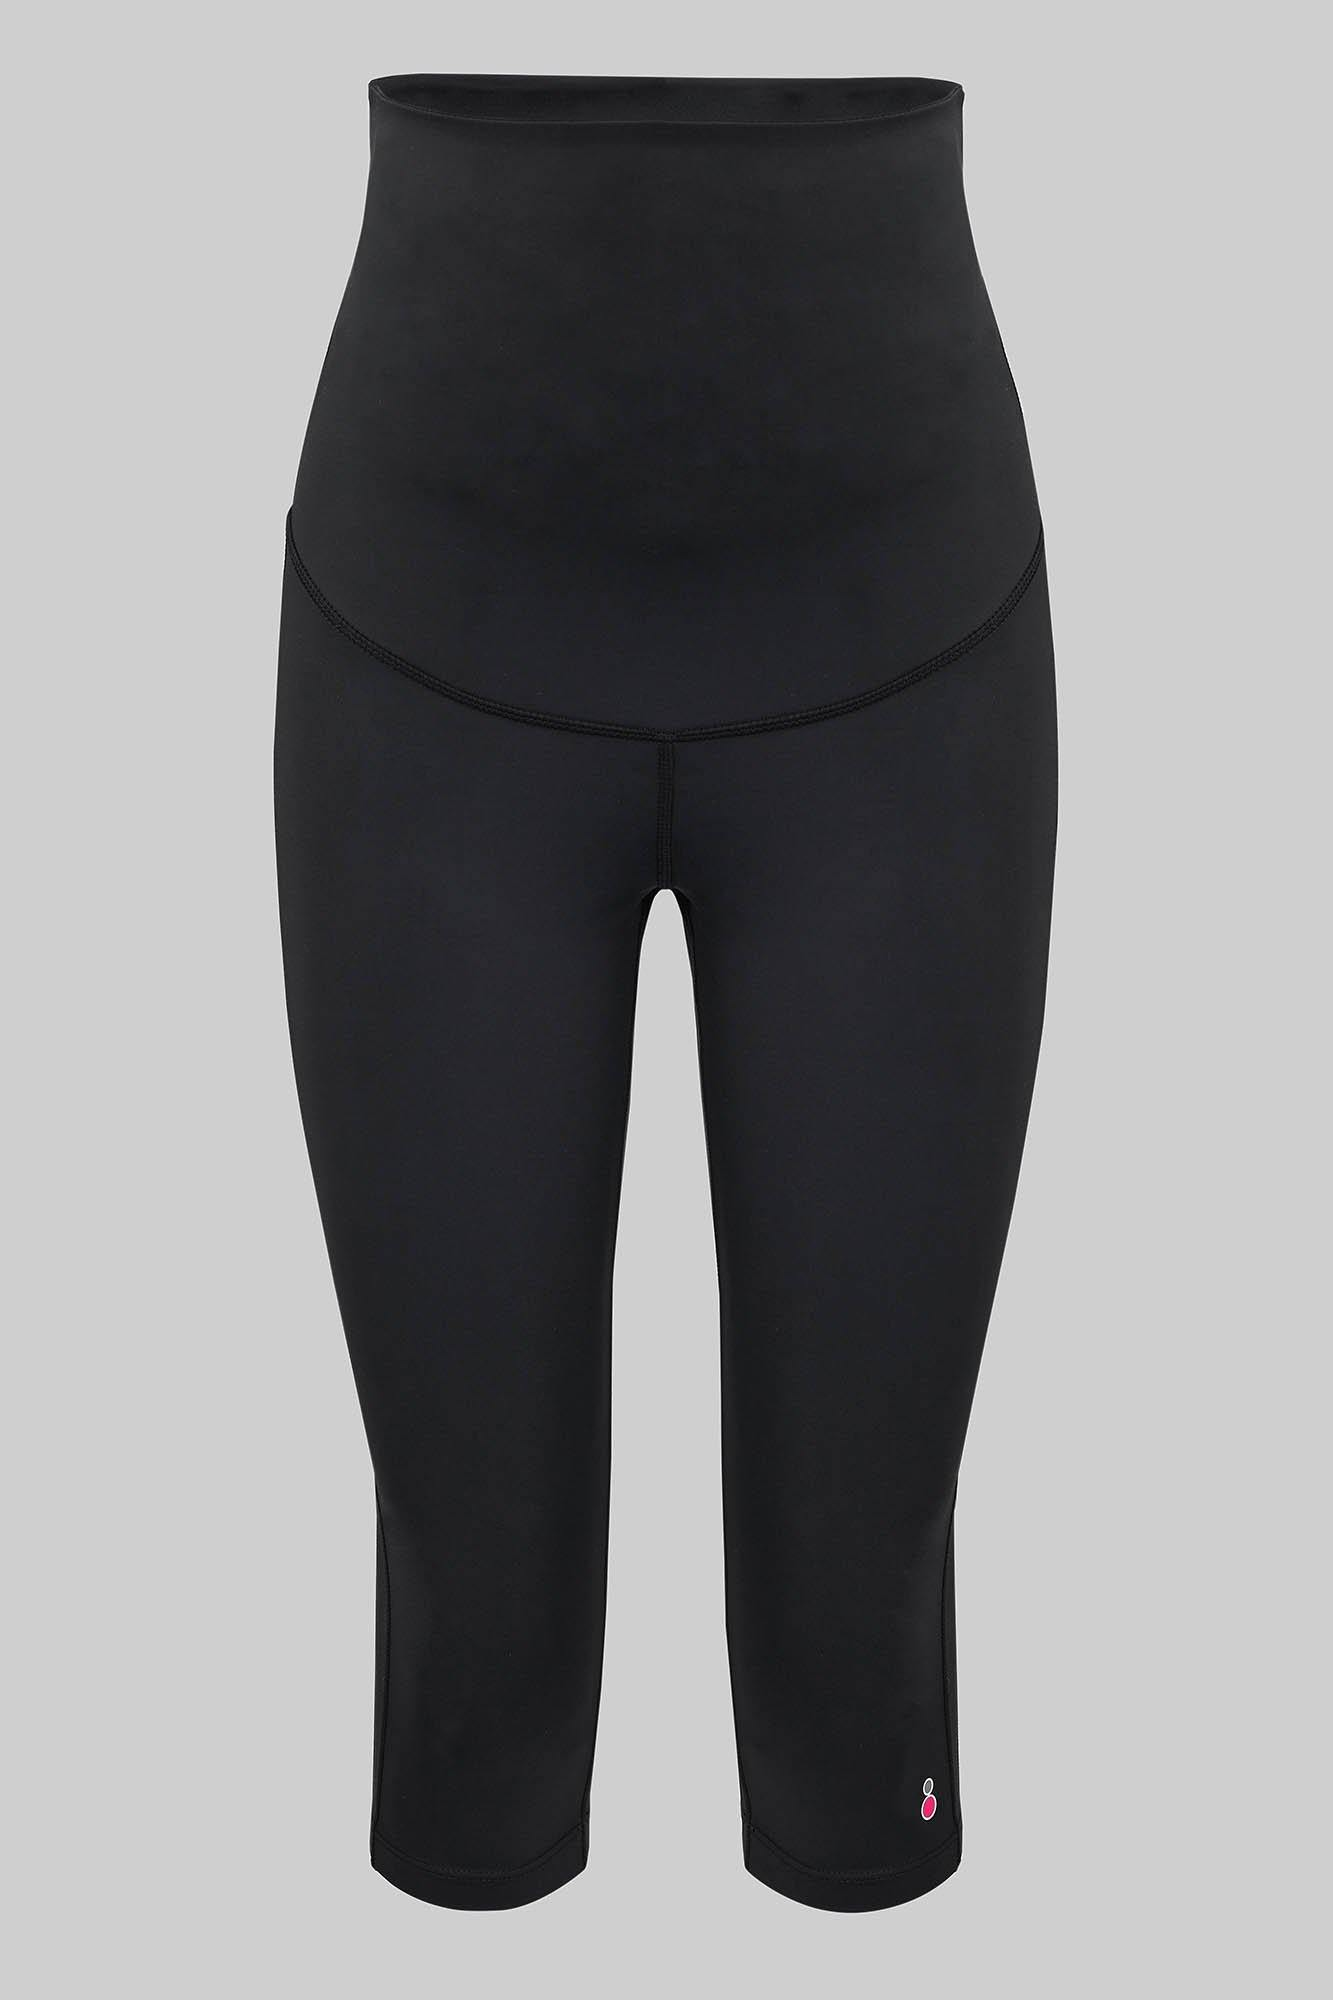 ¾ Maternity Sport Cropped Leggings - FittaMamma